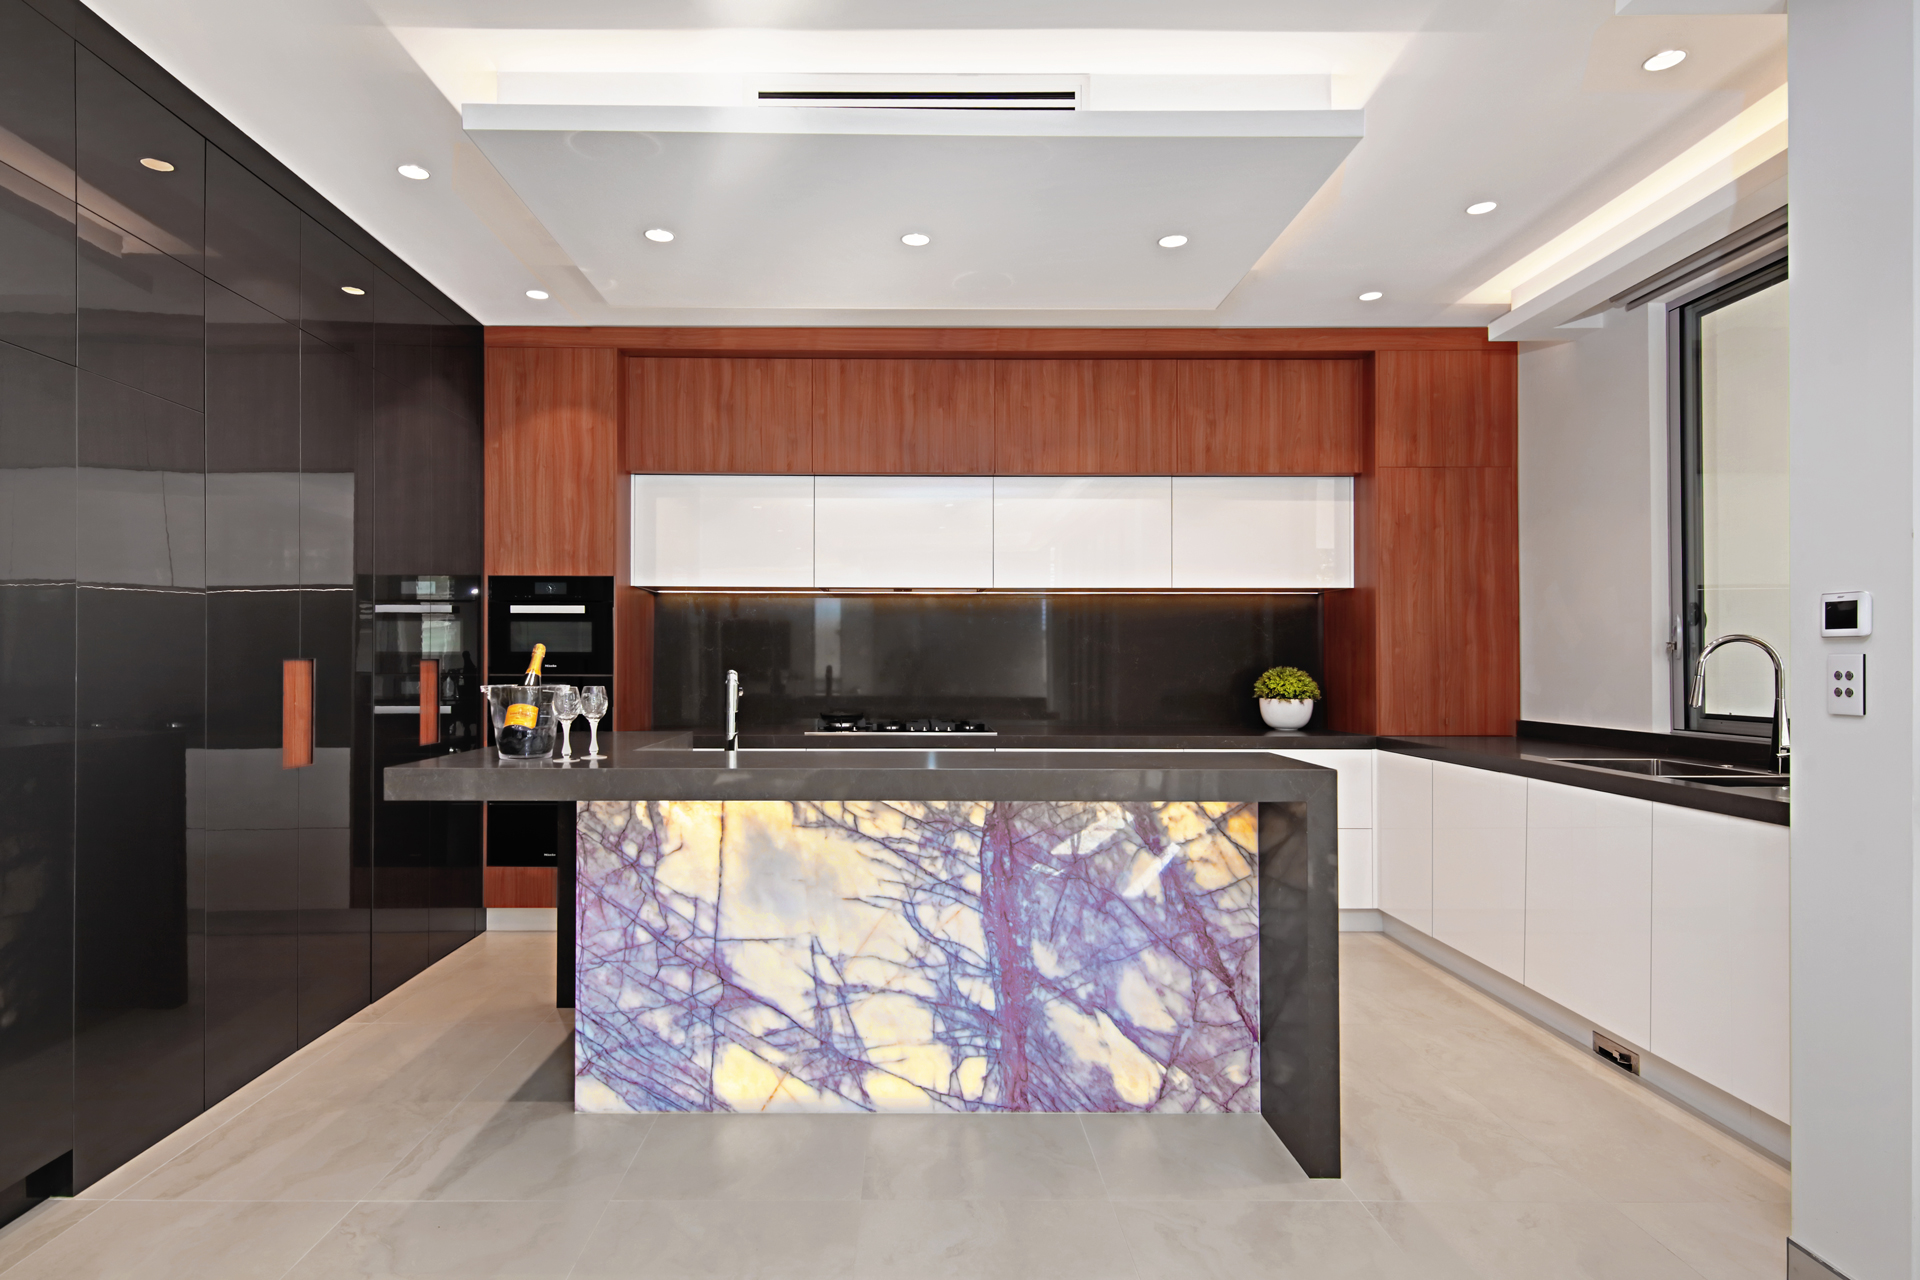 This kitchen by Impala Kitchens and Bathrooms is in a beautiful newly constructed multi-level home. The client's brief was to maintain stylistic integrity throughout this luxurious home.